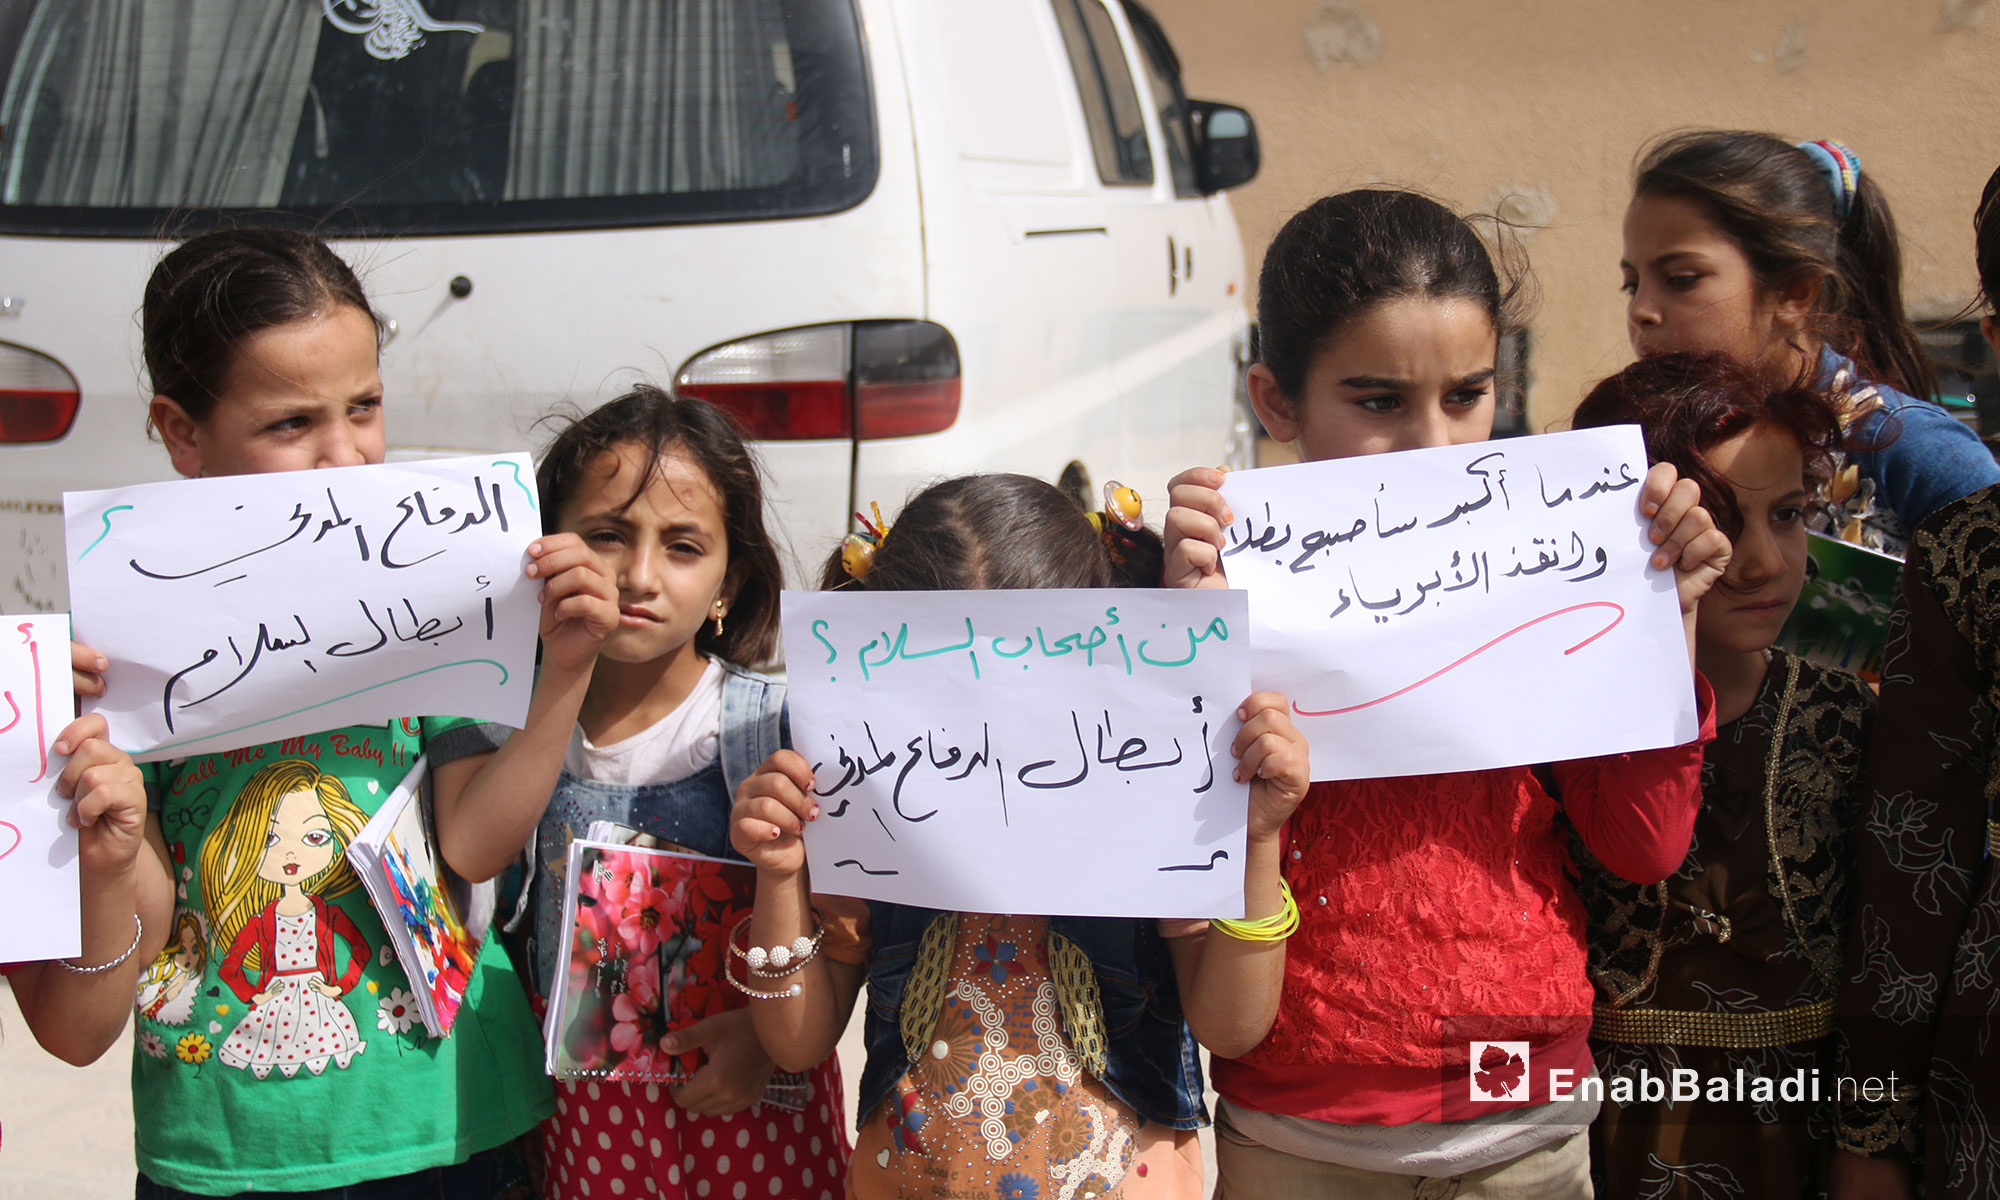 """Teachers and students from """"The Buds of the Future"""" school stand in solidarity with the """"White Helmets"""" in rural Idlib (The signs from left to right say:  Civil Defense are Peace Heroes, Who Are the Peace Keepers? The White Helmets; When I Grow up, I will be a Hero and Save the Innocent) – July 25, 2018 (Enab Baladi)"""